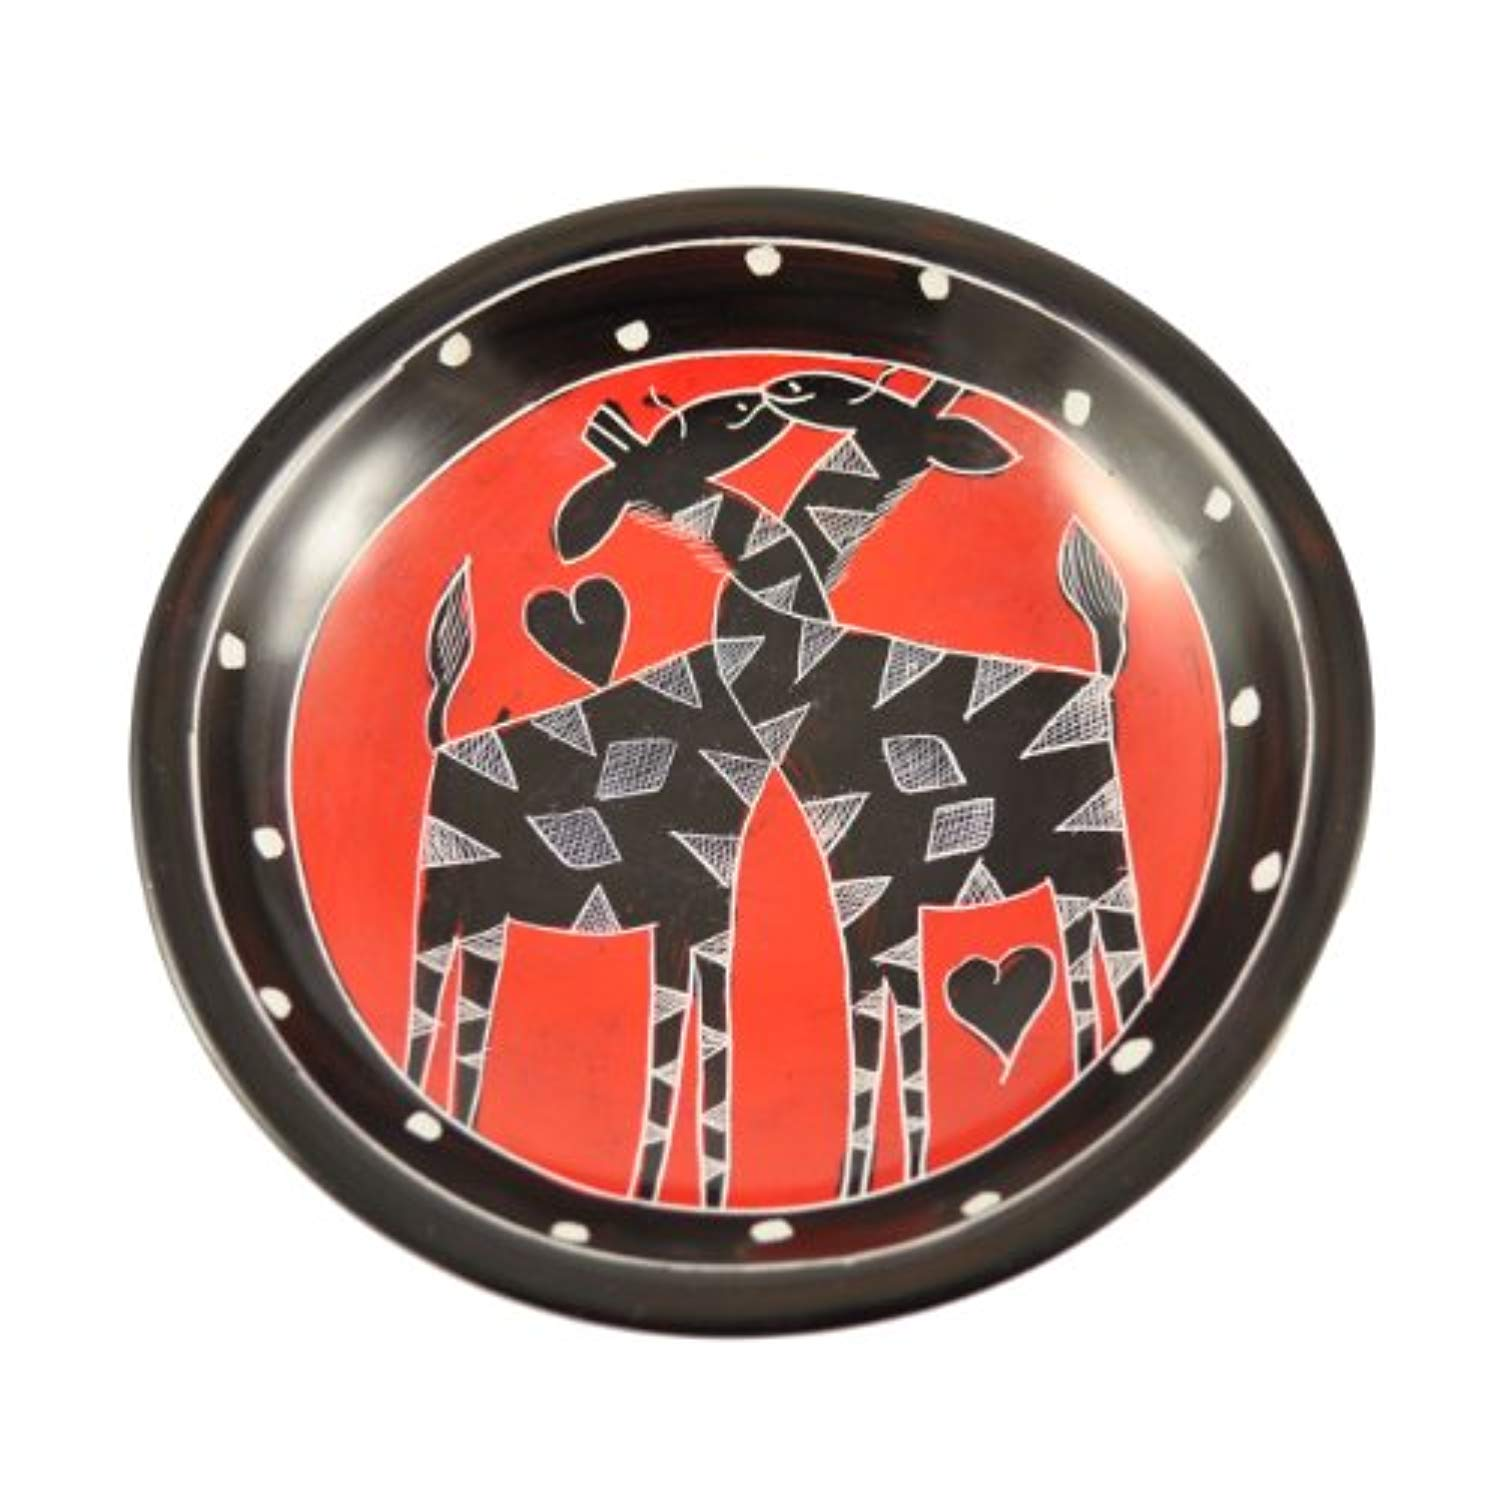 Romancing Giraffes 5-inch Carved Soapstone Bowl, Red/Black - Ufumbuzi - Home